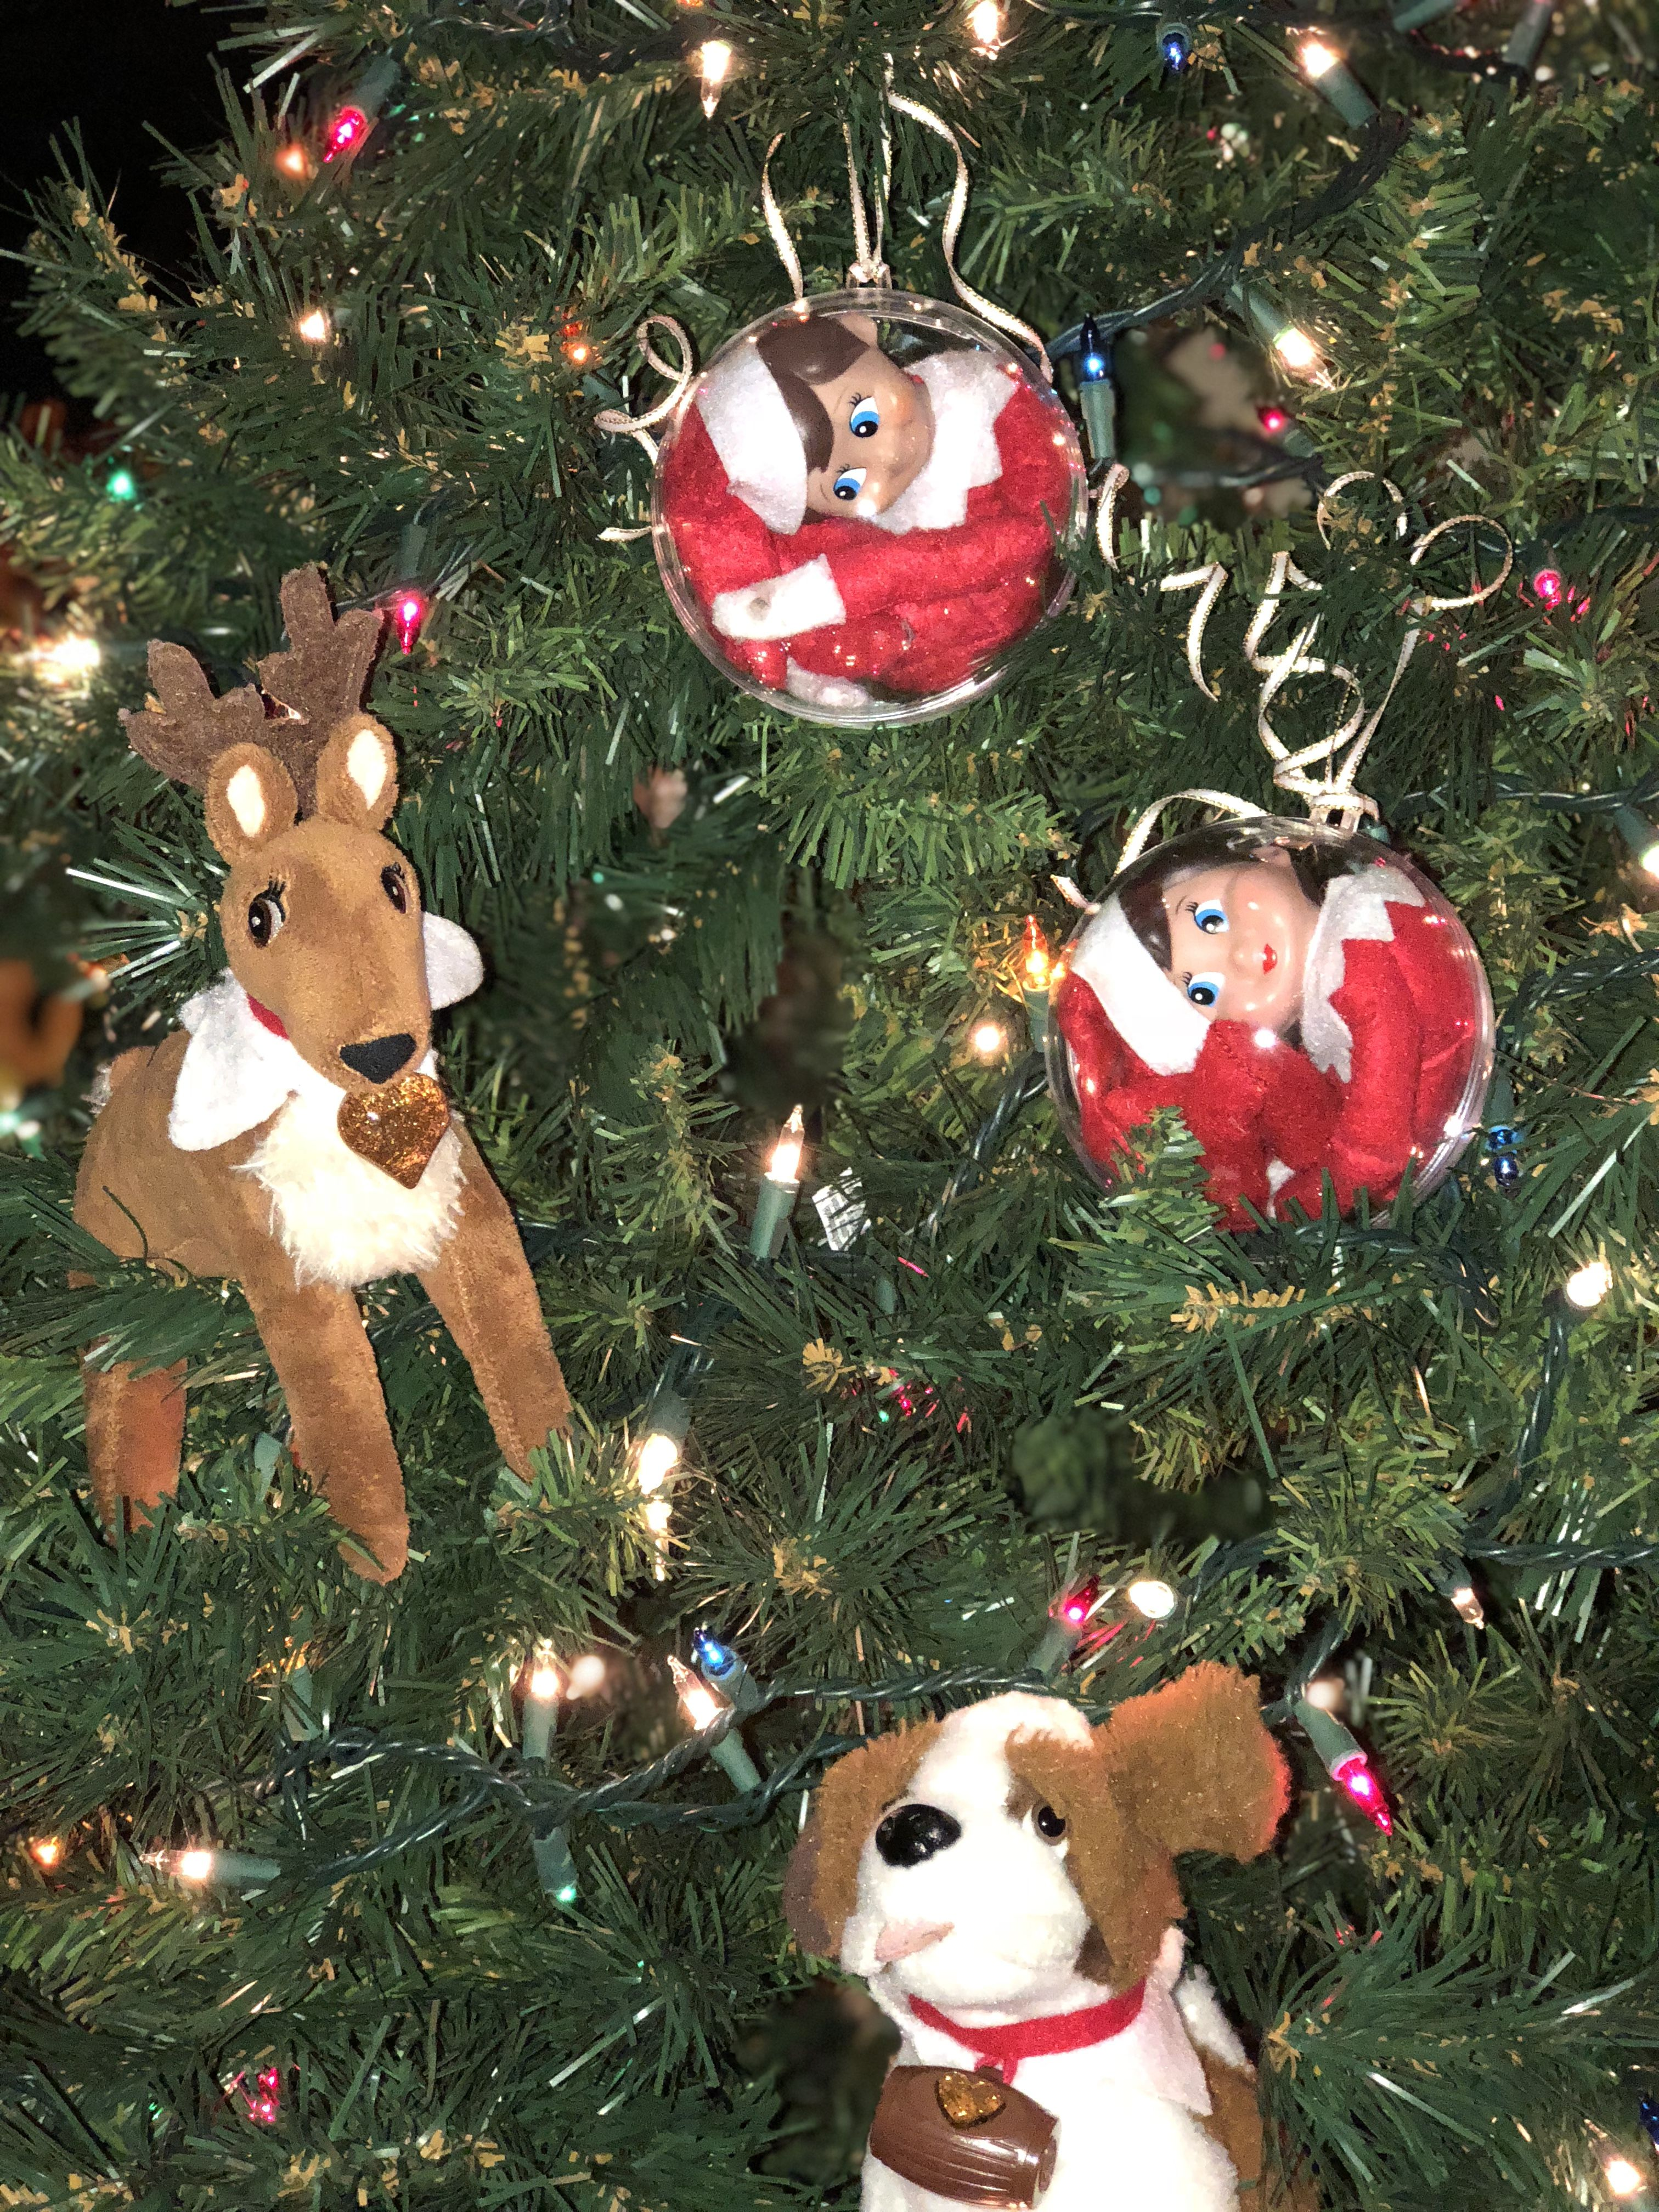 Elf on the shelf. Or in a tree! Funny little elves hiding ...